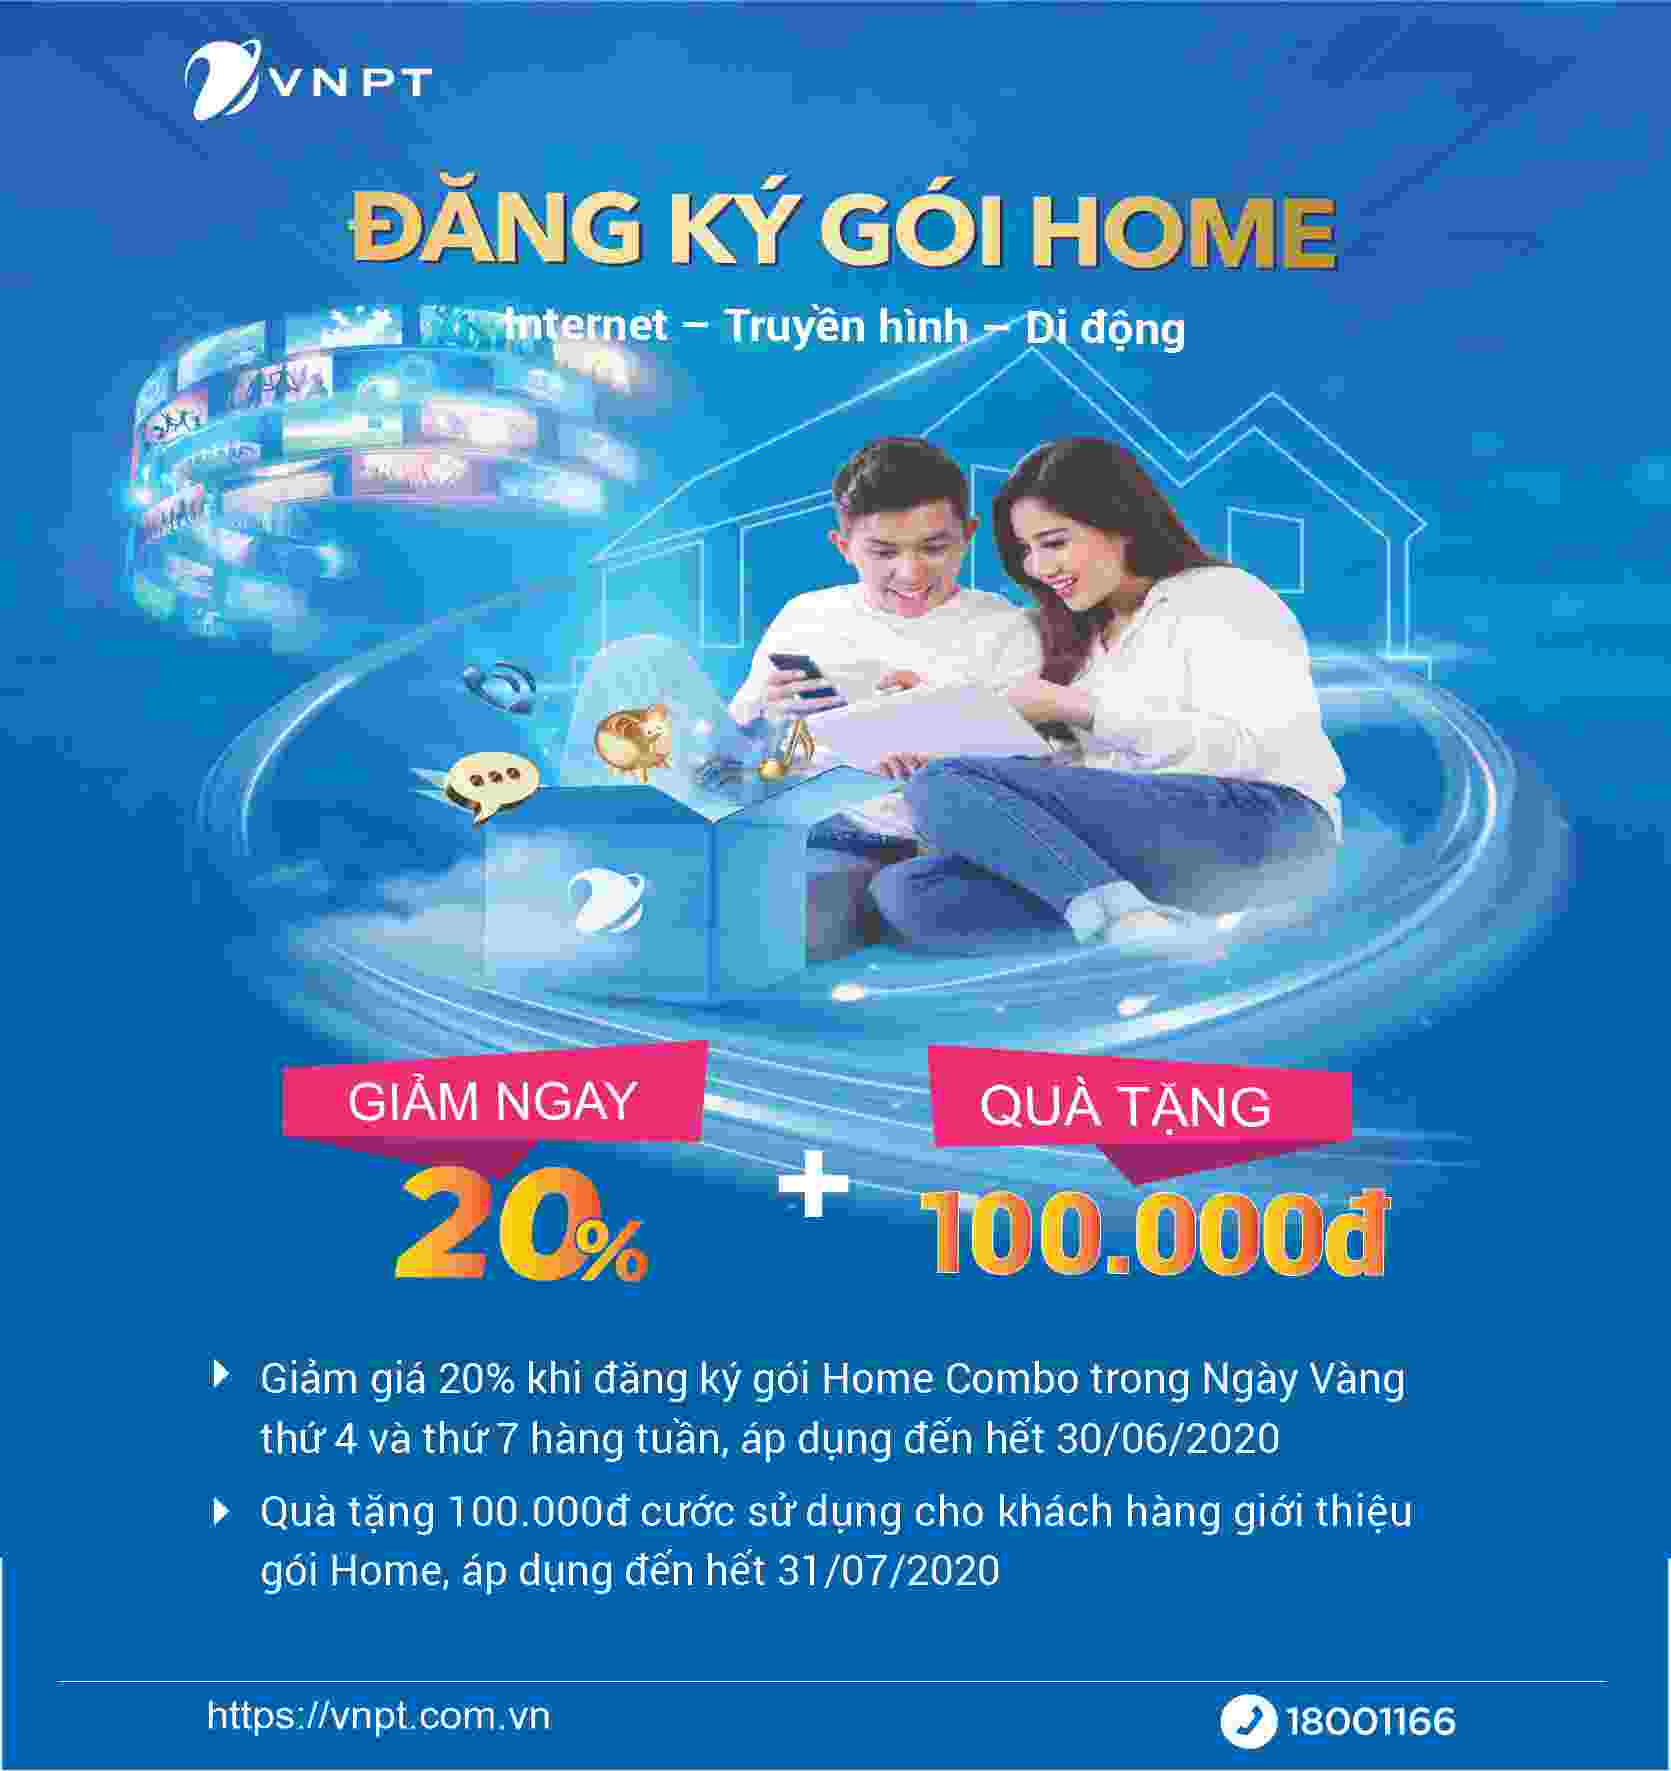 homecombo-compressed-1591236101.jpg